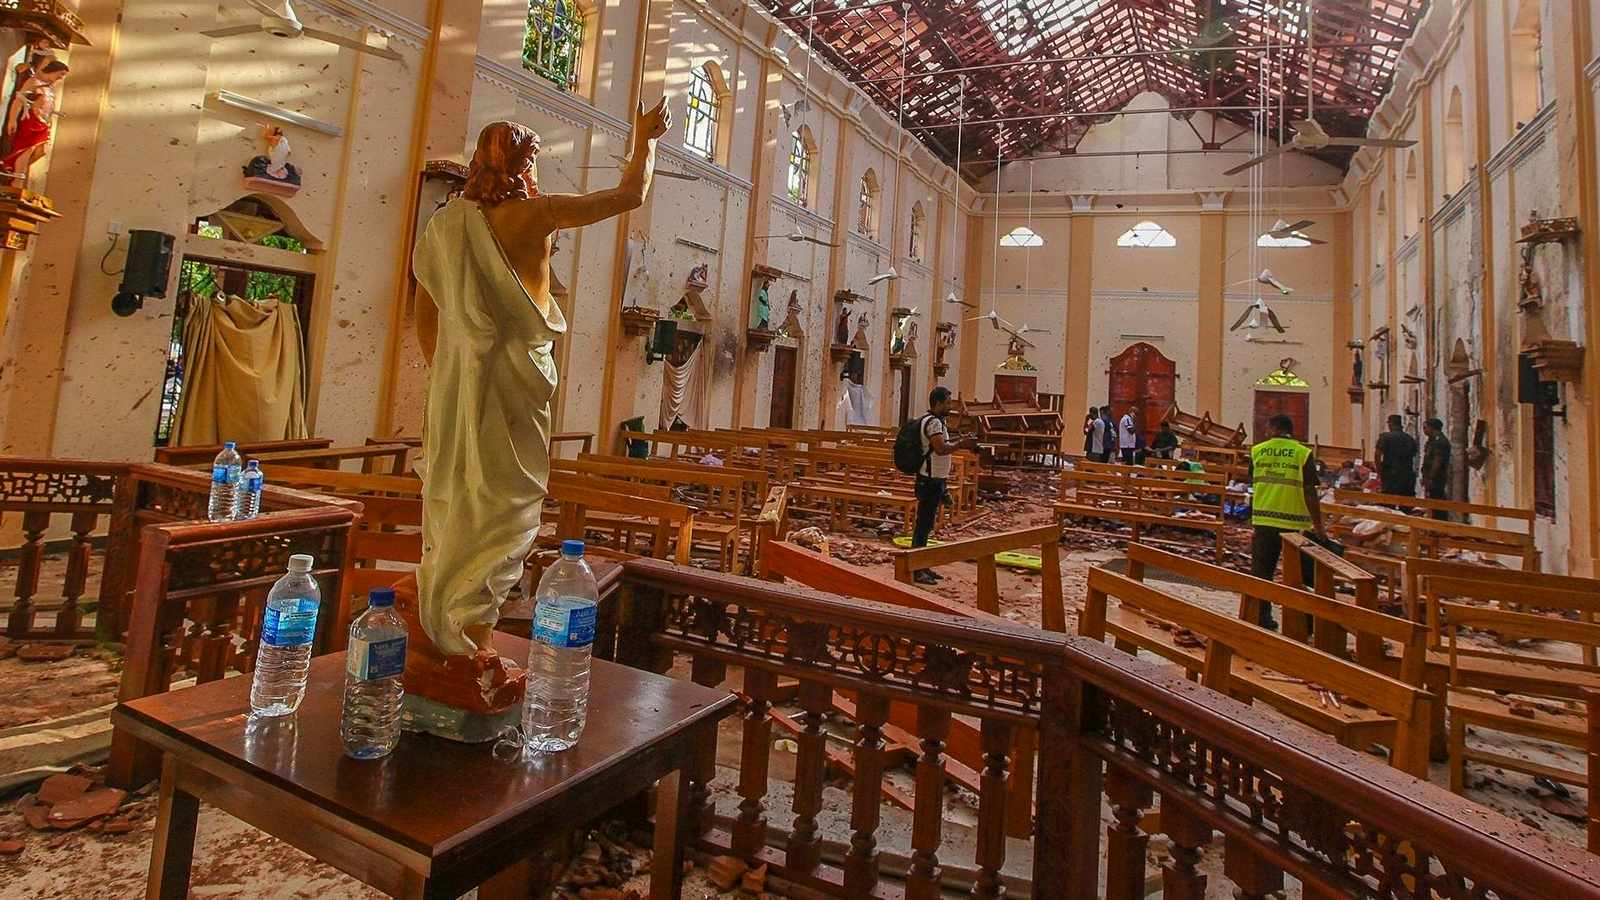 Things to consider before travelling to Sri Lanka